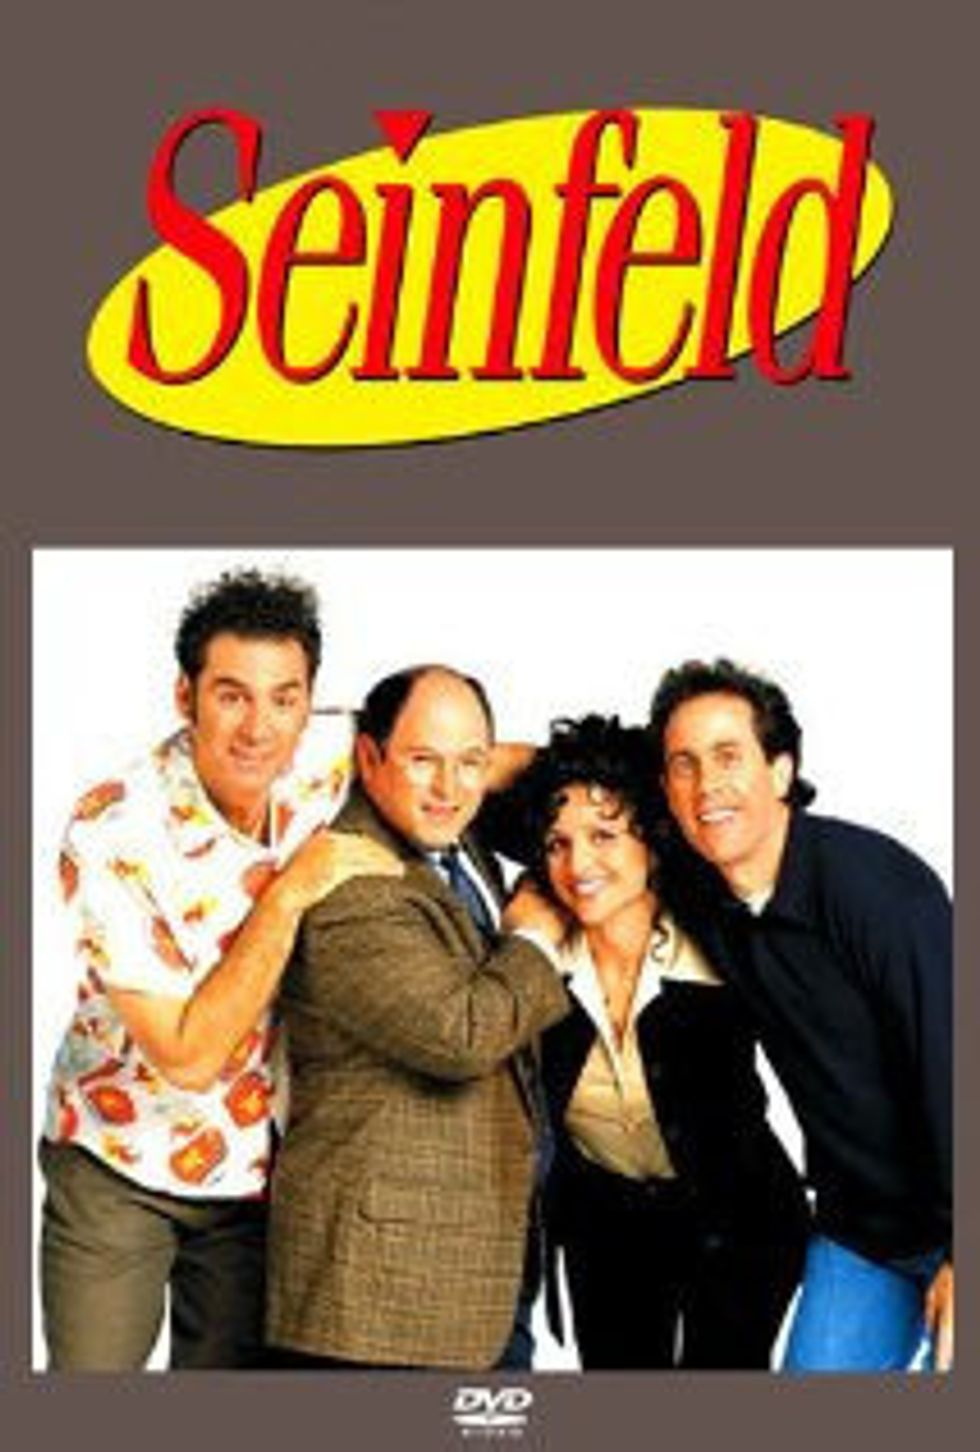 'Seinfeld' Was The Greatest Sitcom Of The 90s, It's A Symbol Of My Childhood